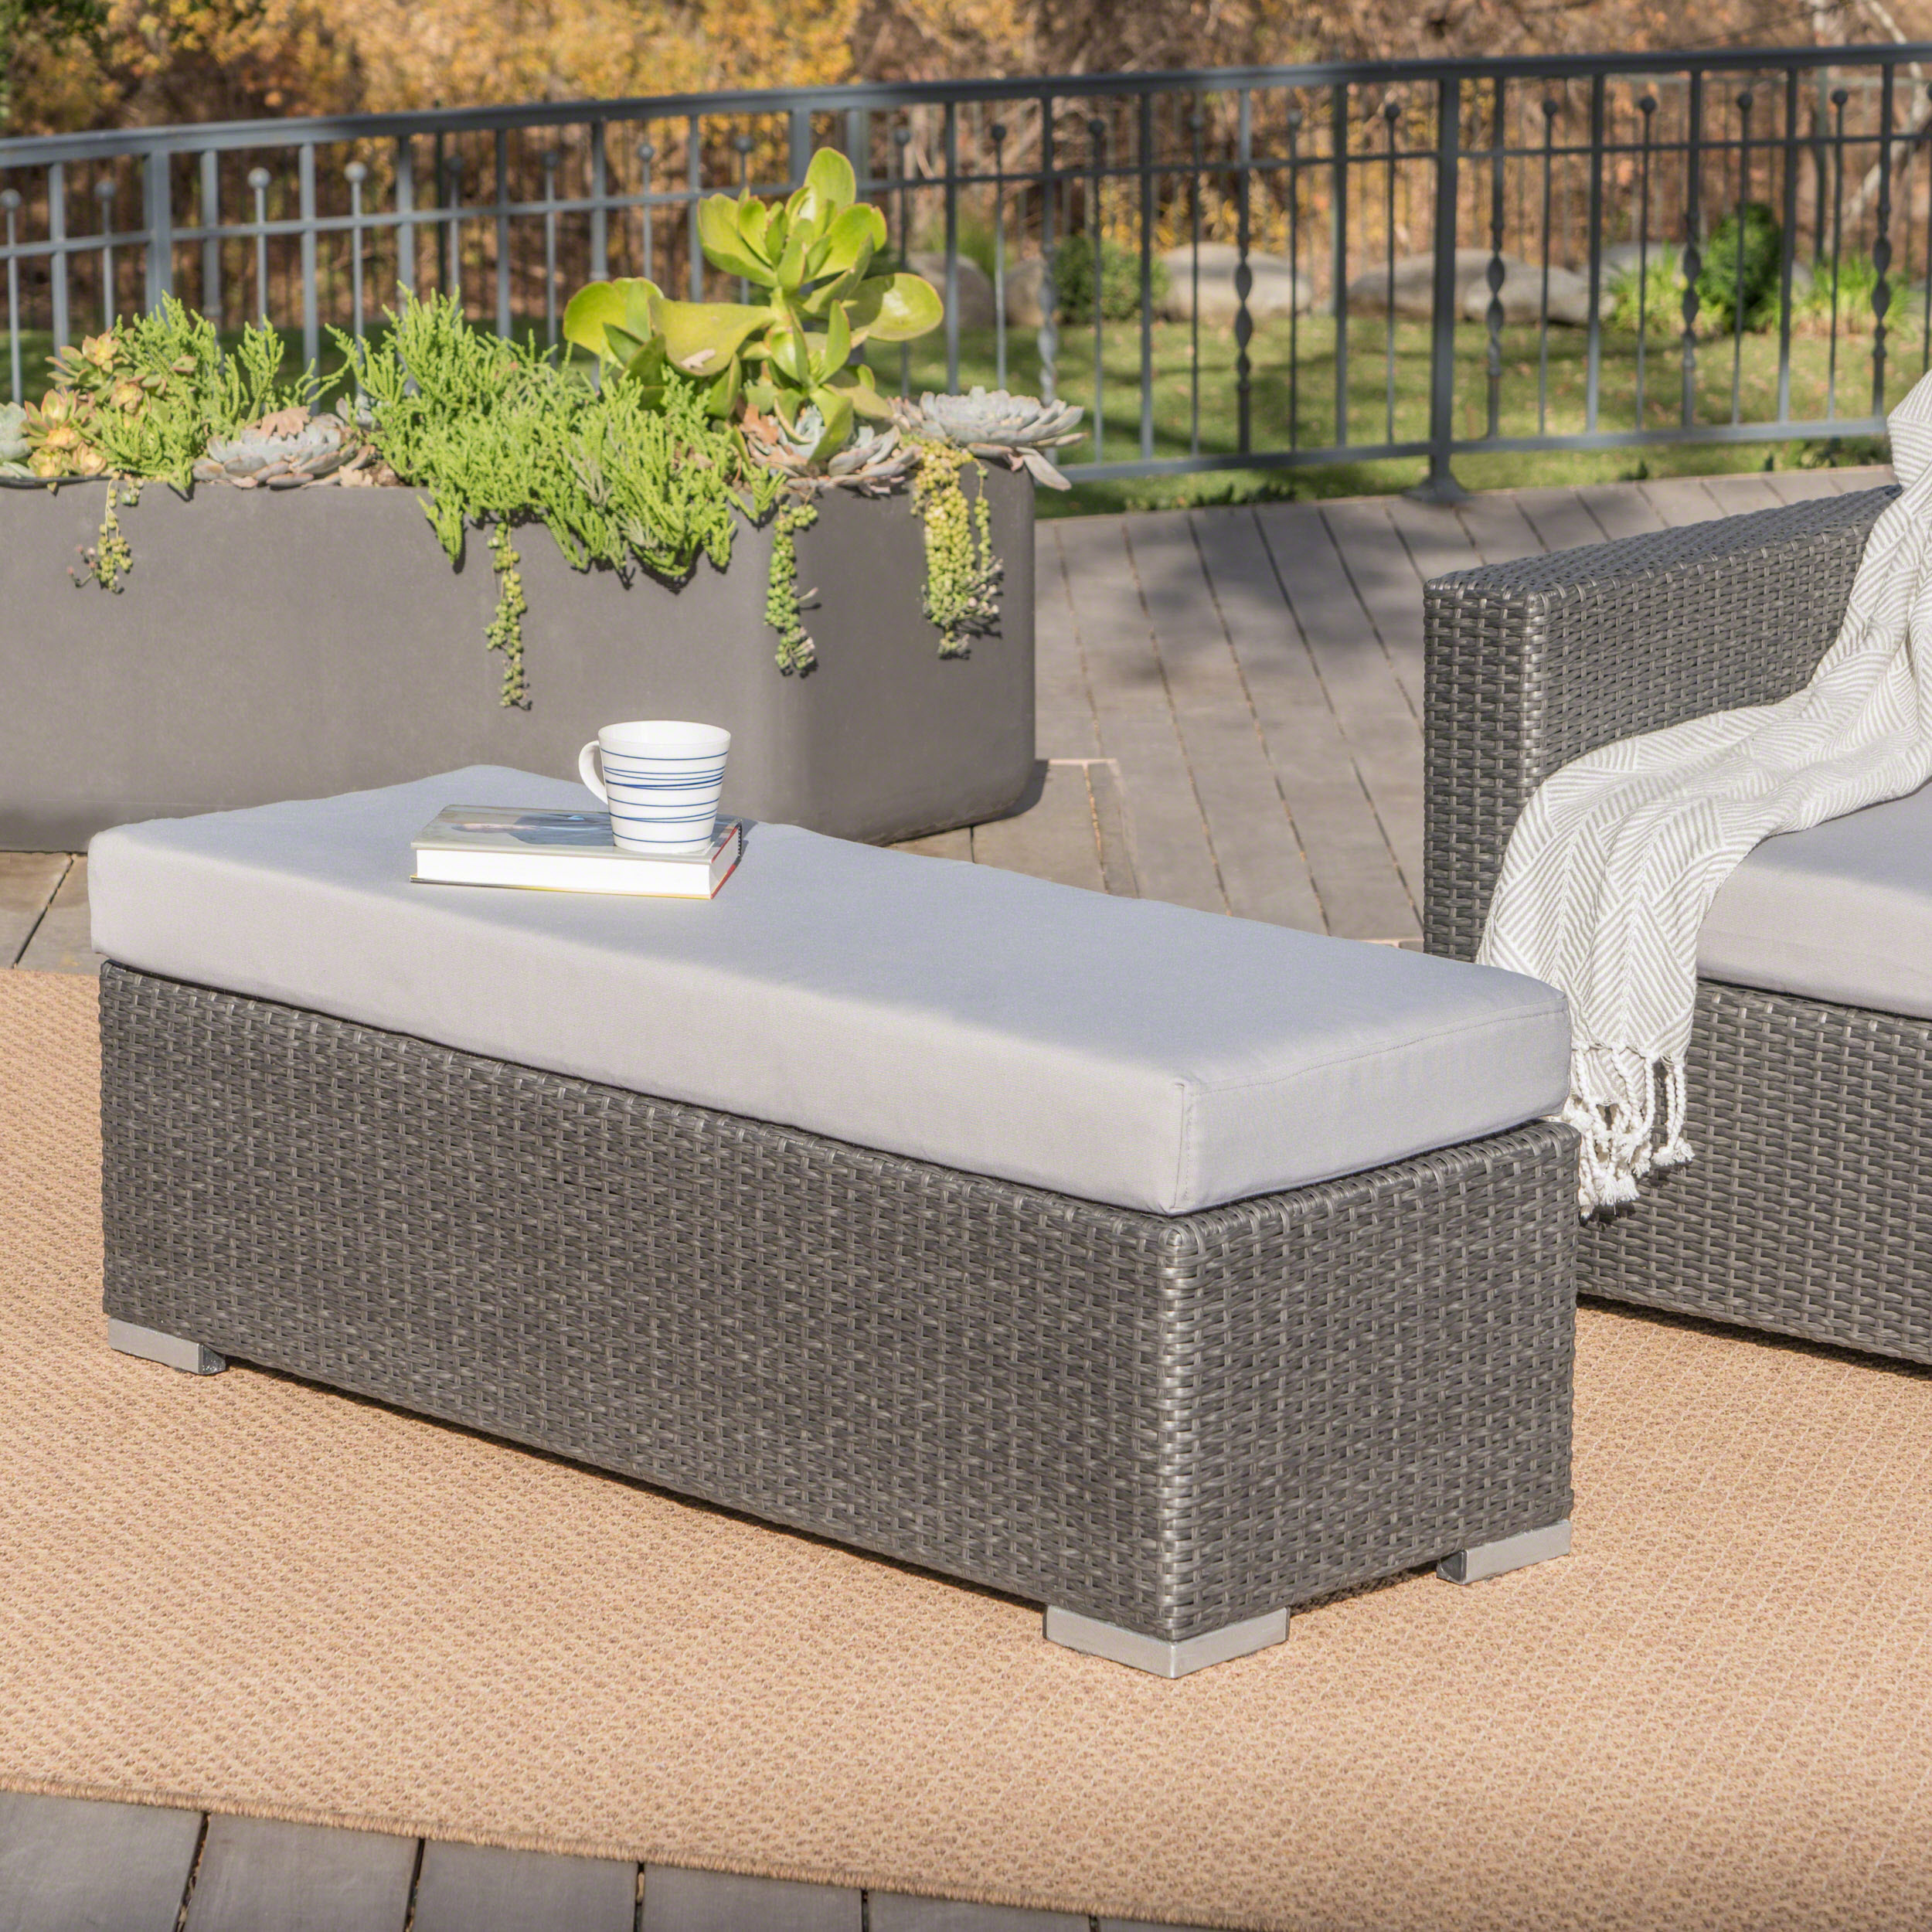 Avianna Outdoor Wicker Bench with Cushion, Grey, Silver